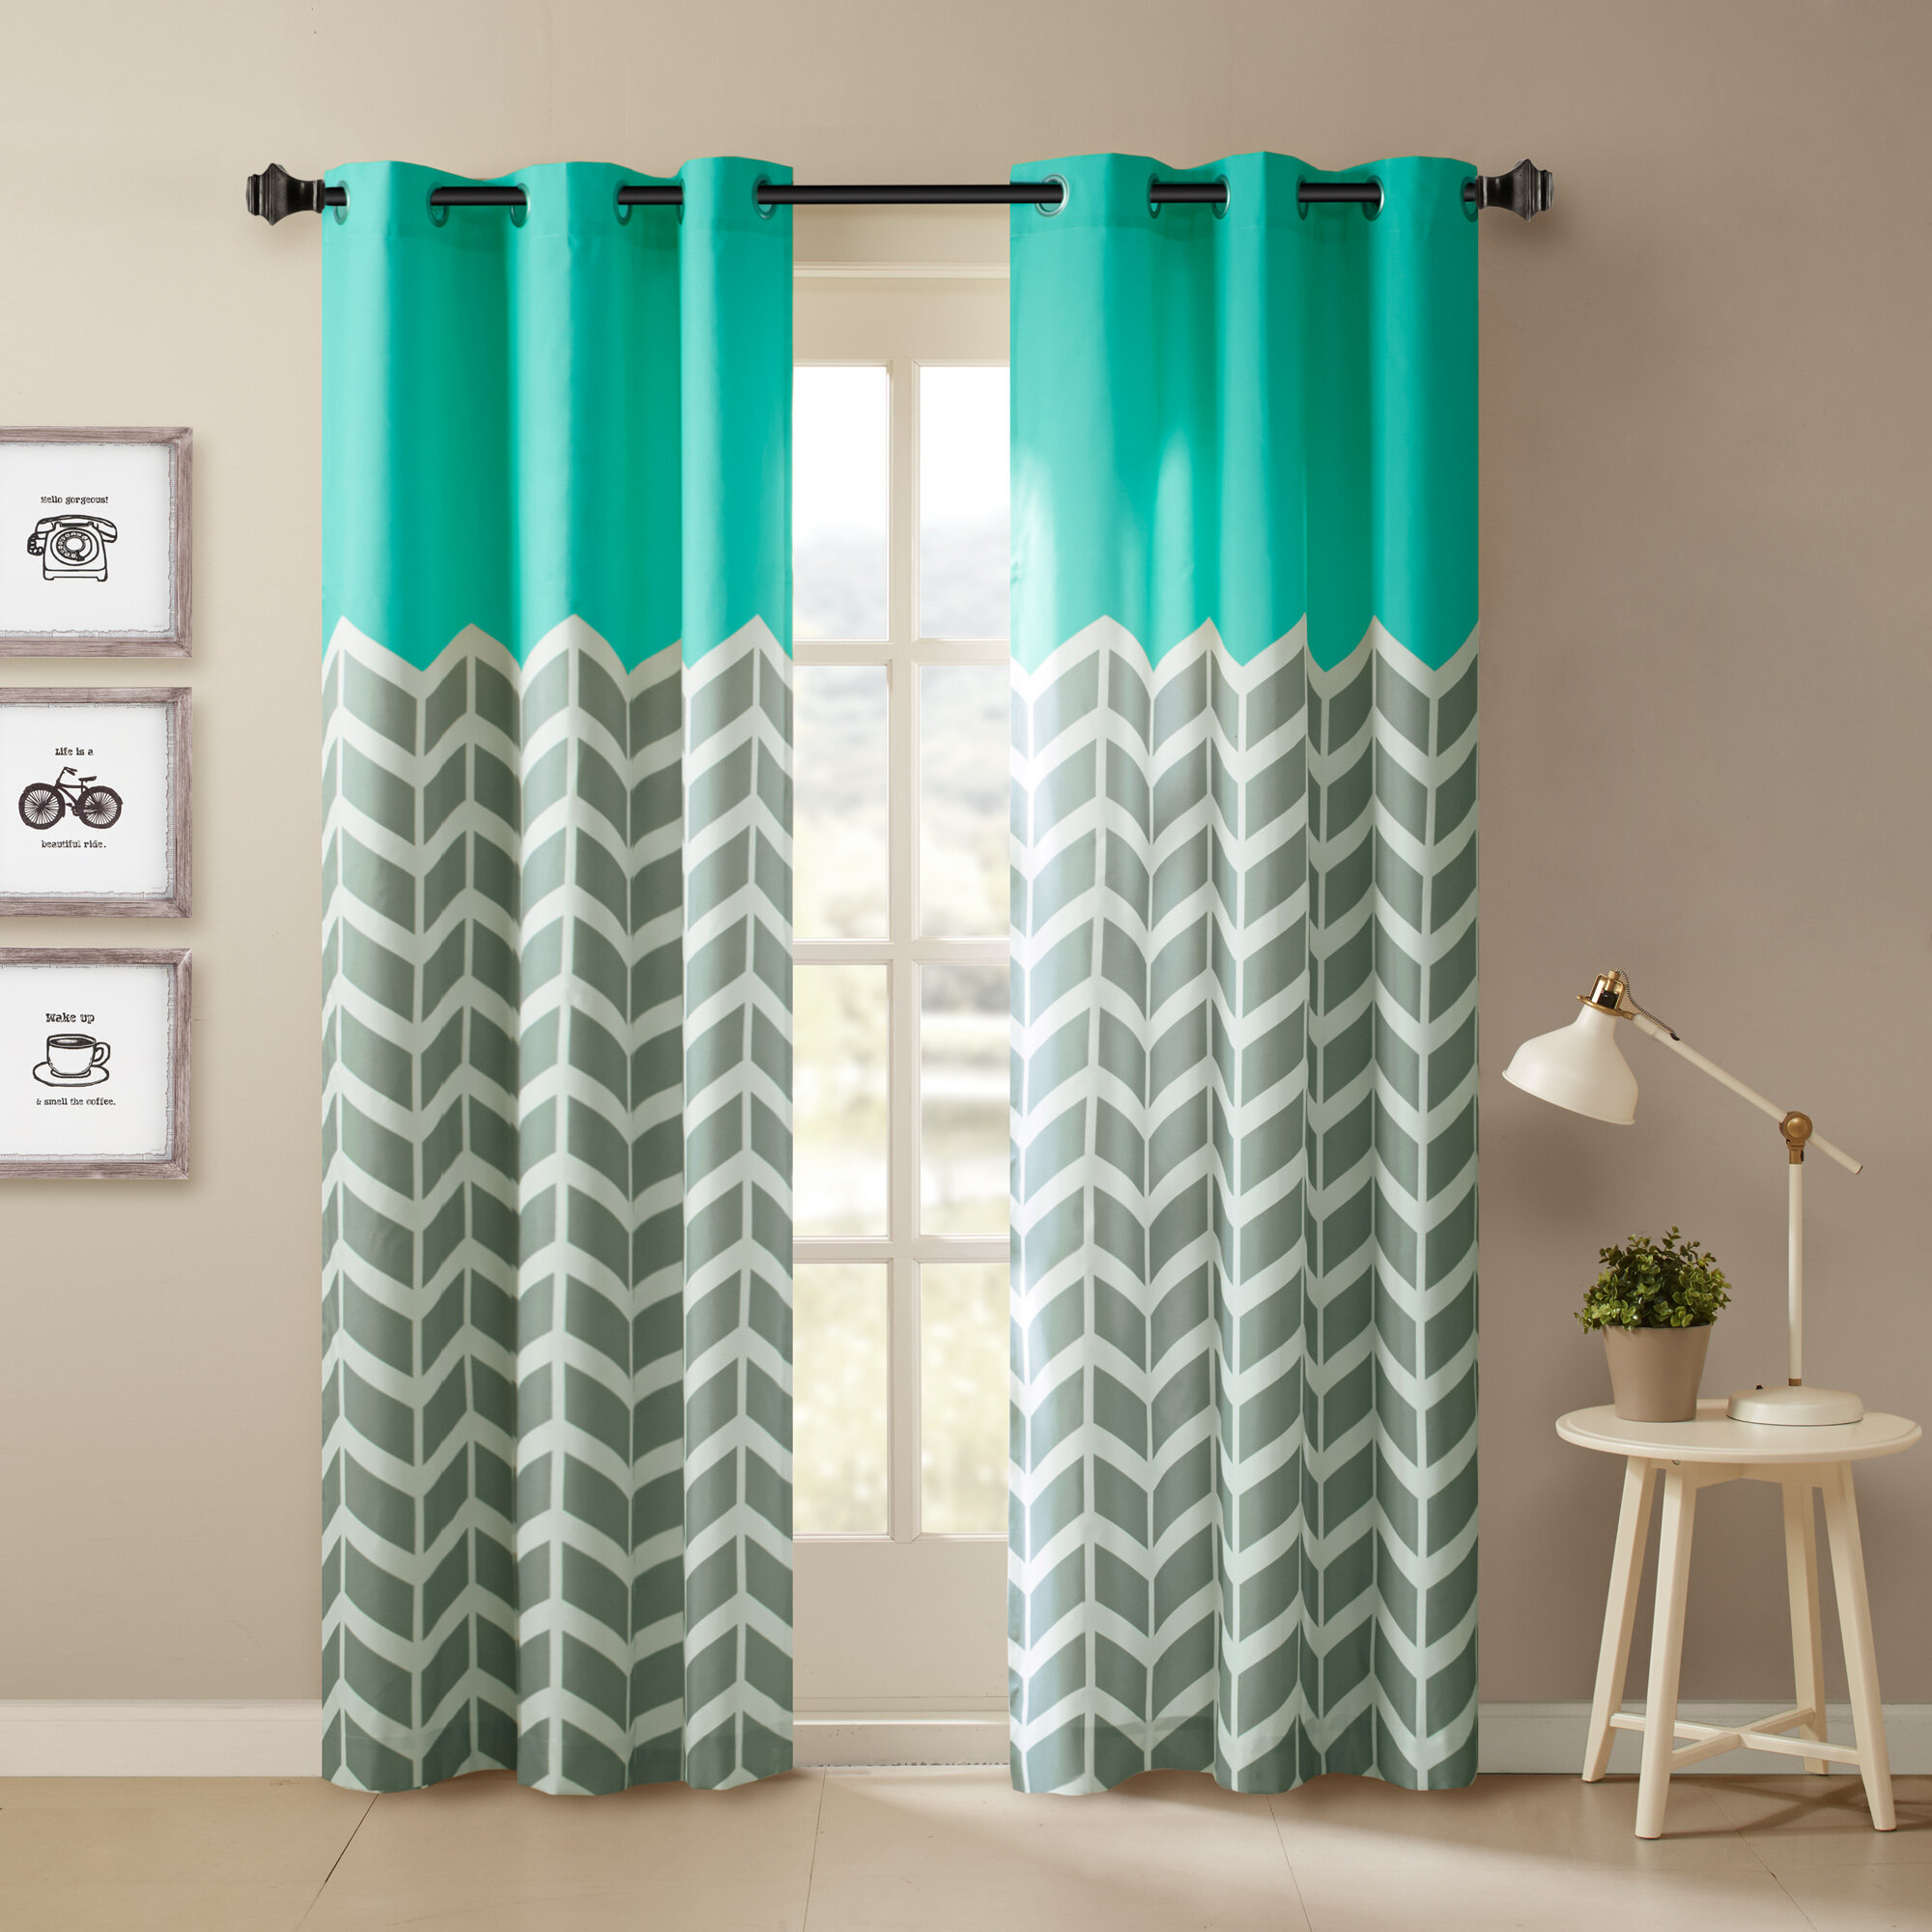 single patio basics treatments panel window pdx curtain blackout solid reviews wayfair curtains grommet